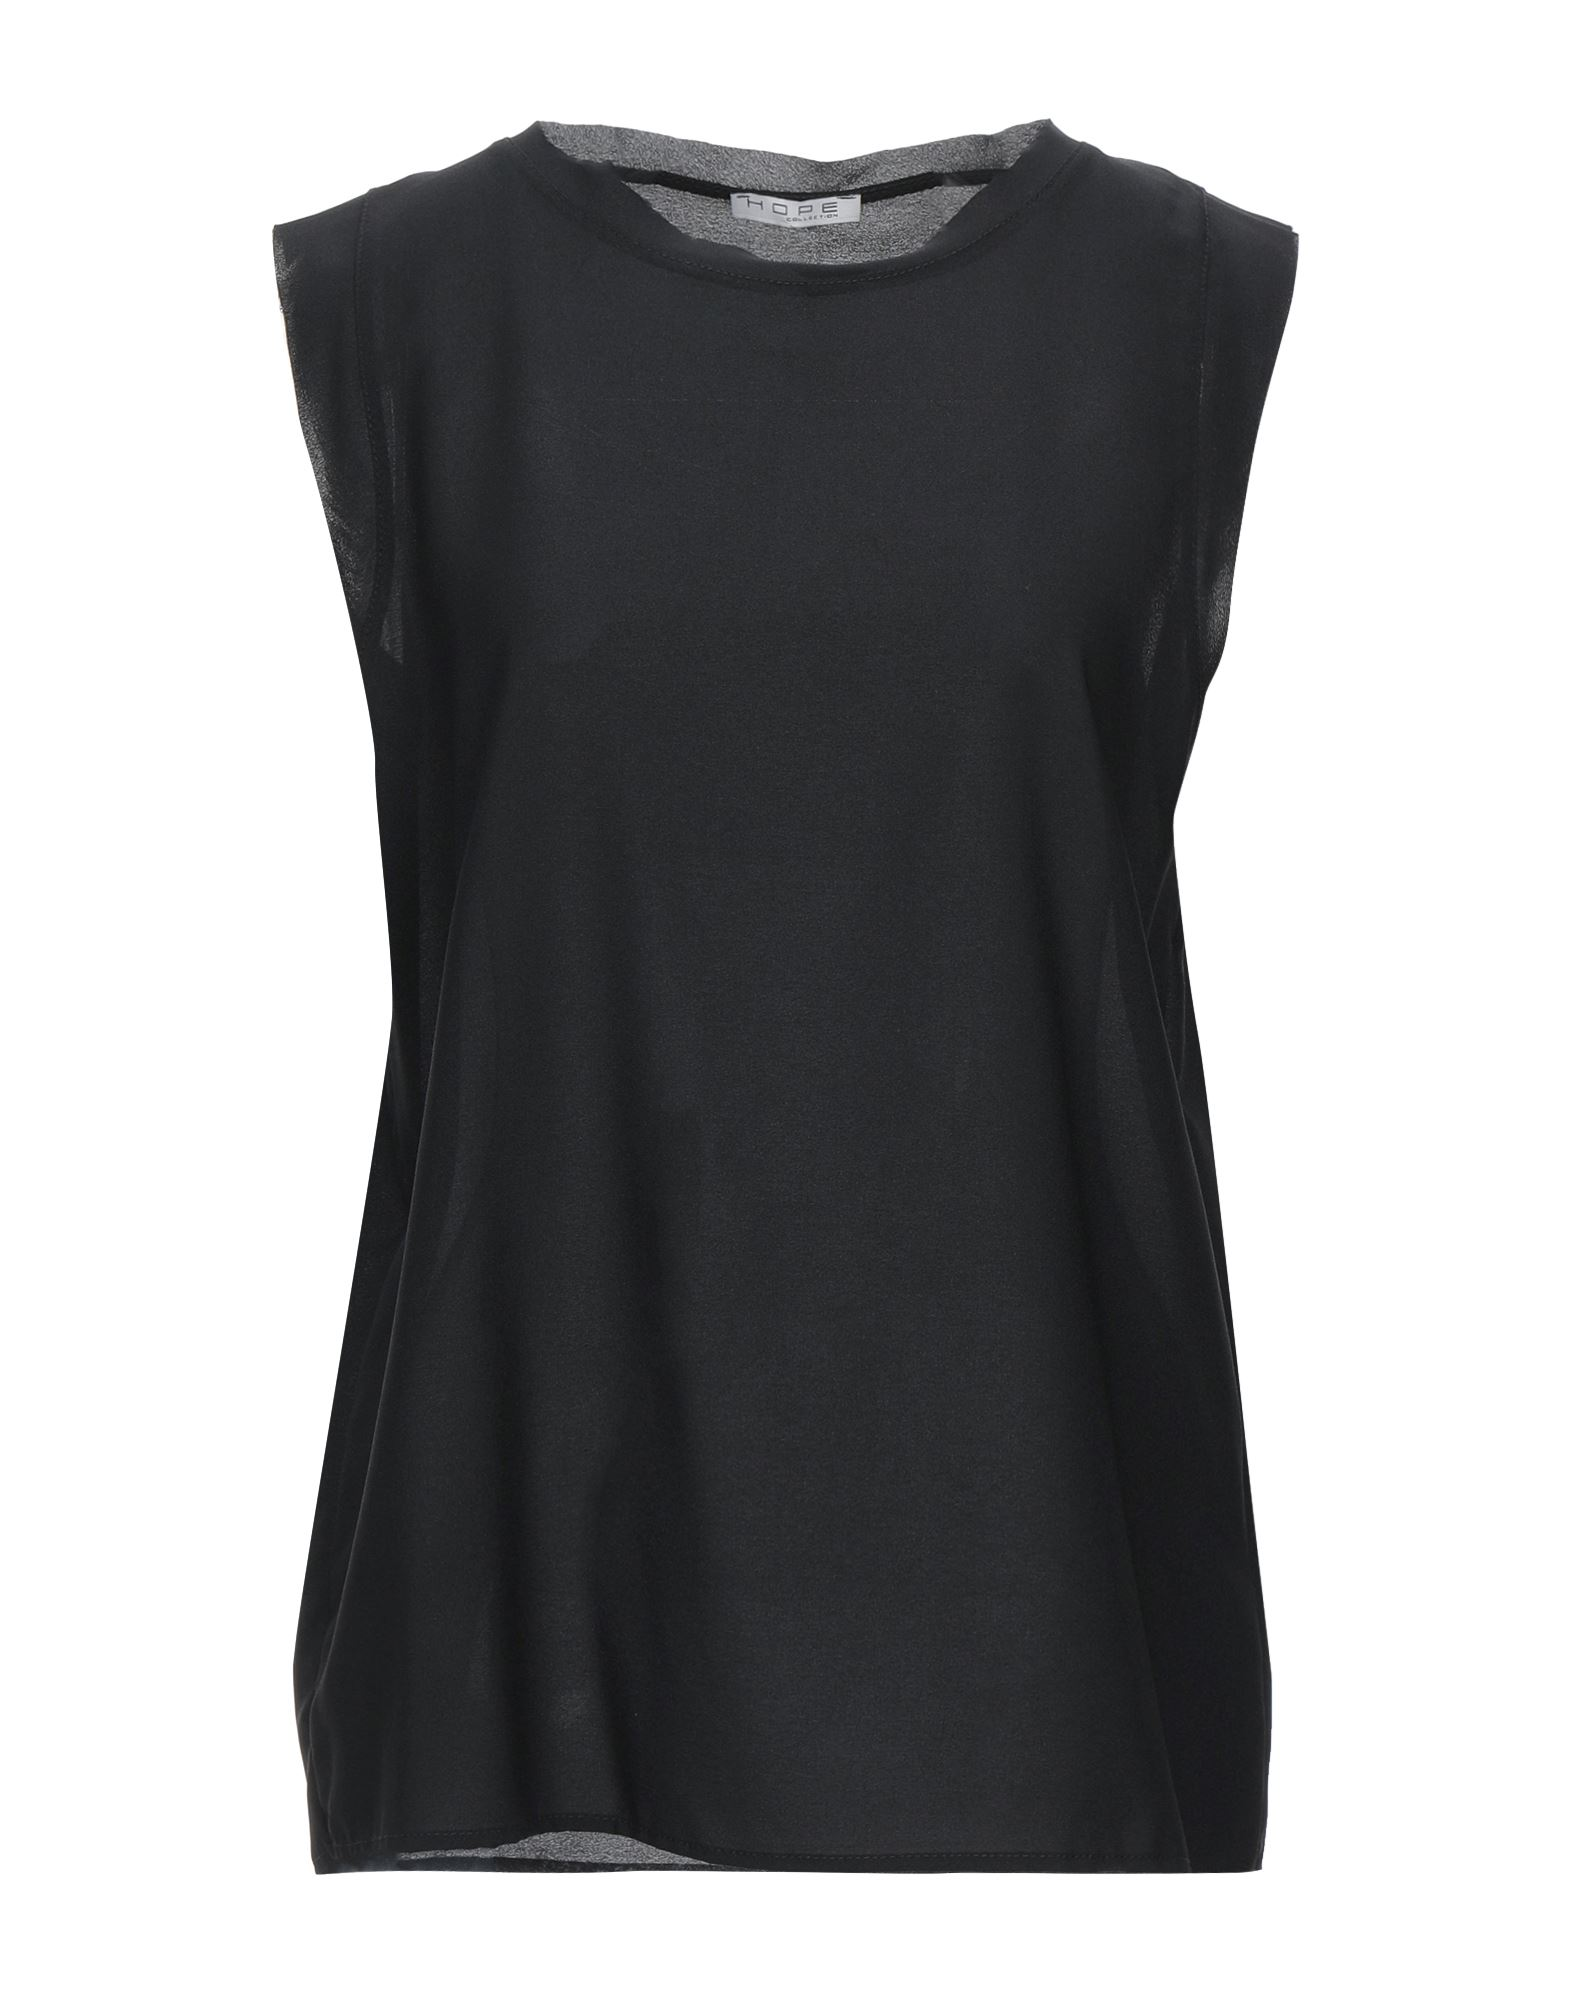 HOPE COLLECTION Tops - Item 12539935